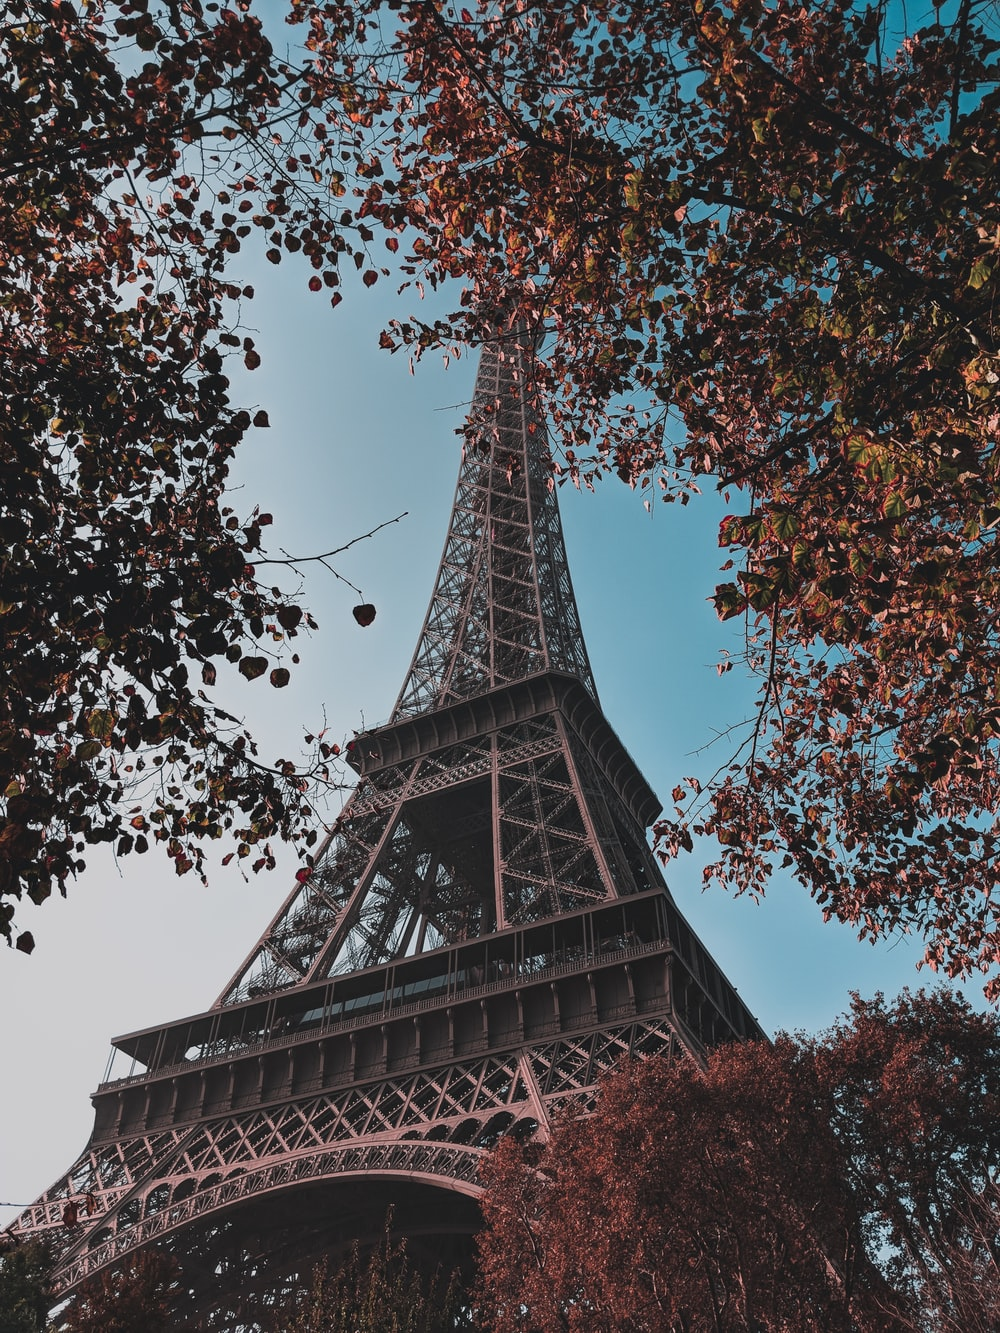 Eiffel Tower, Paris during day time